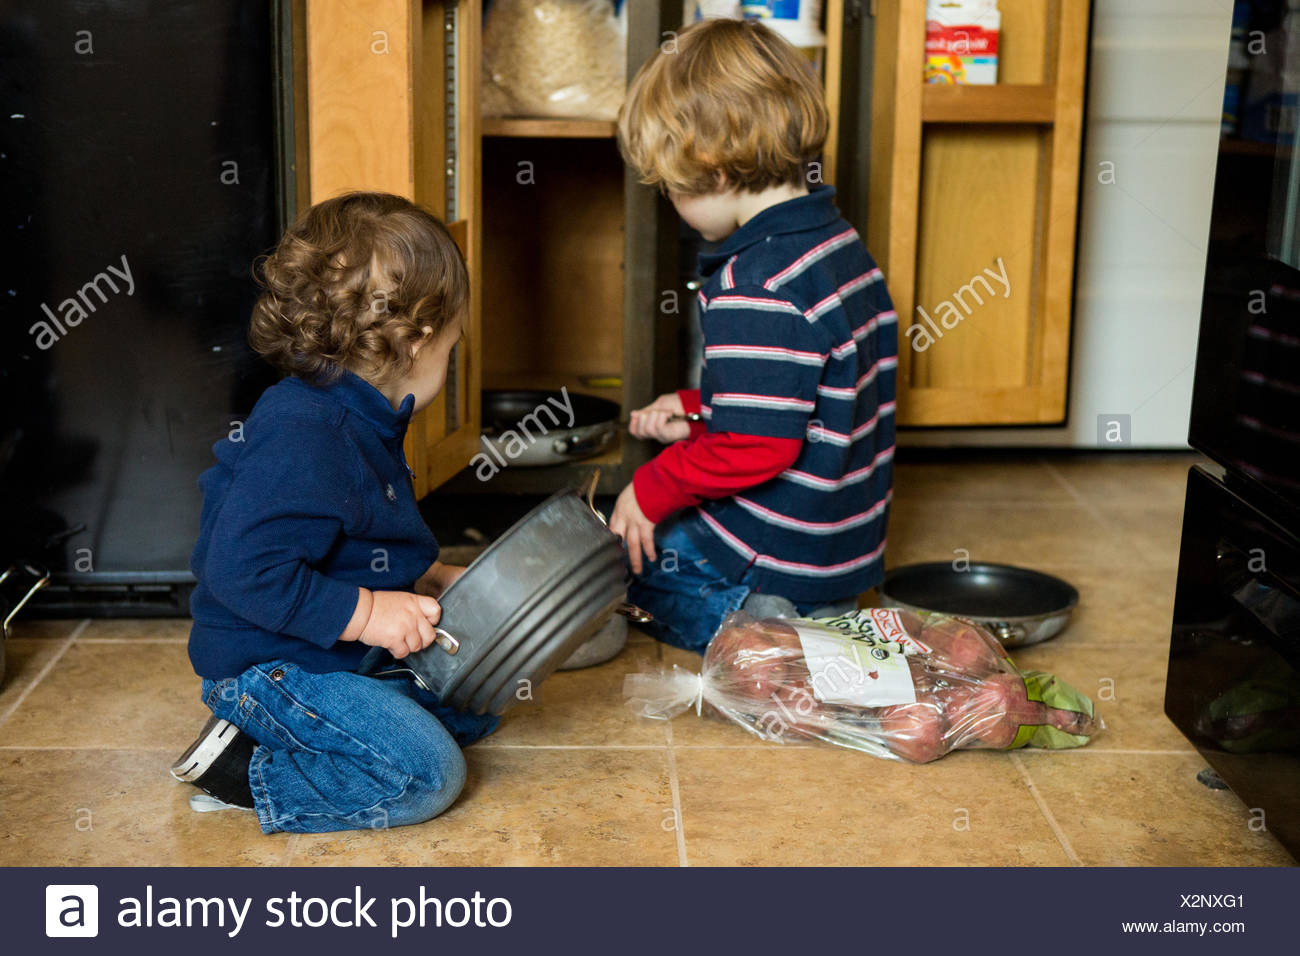 Two boys emptying a kitchen cabinet - Stock Image